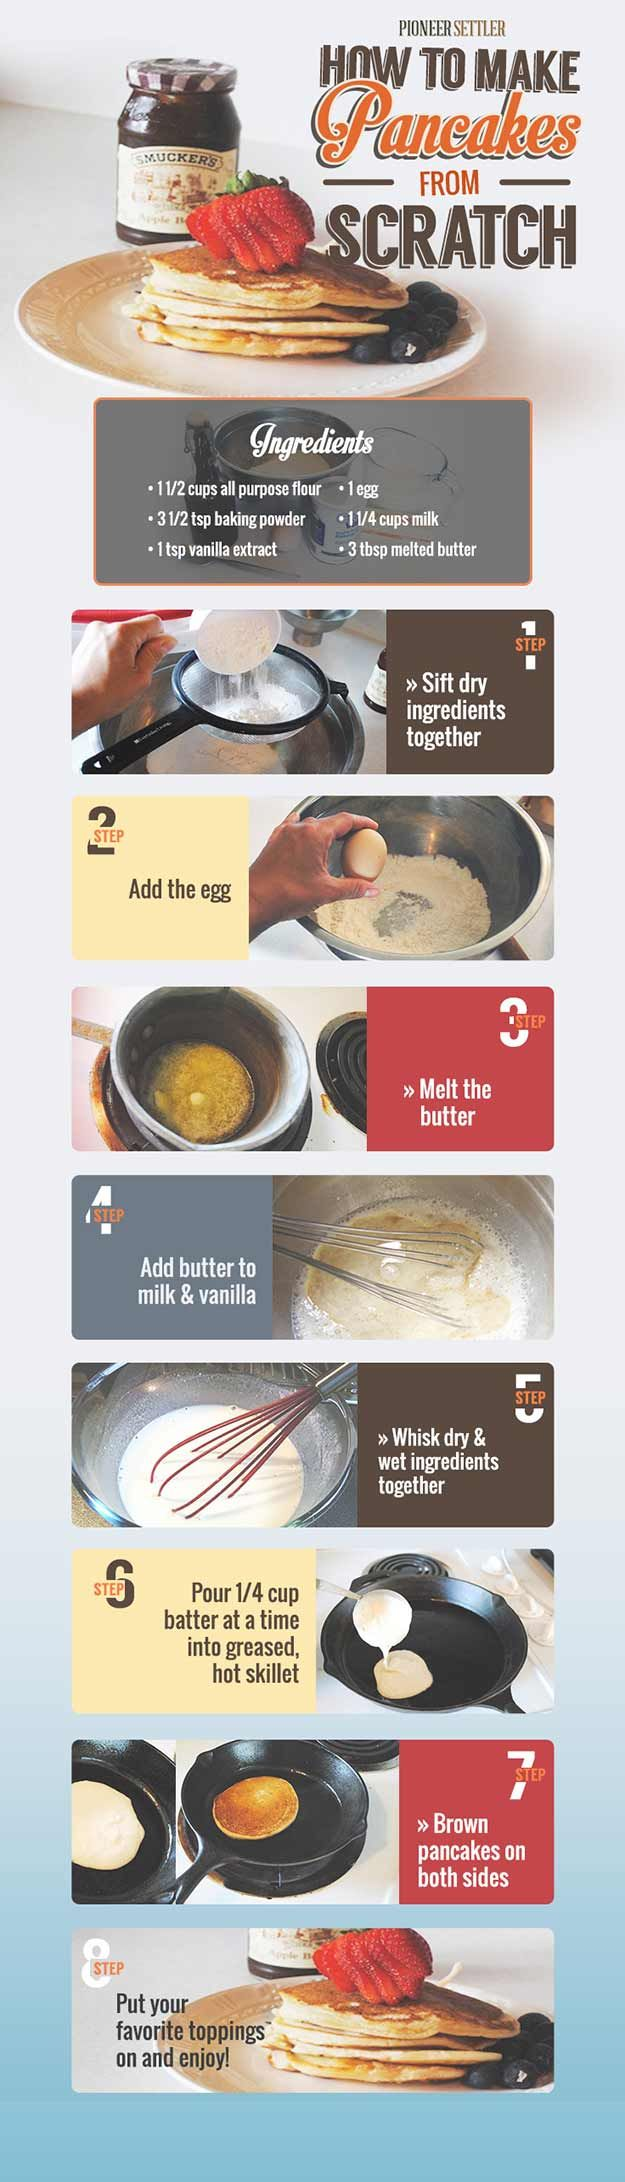 Easy pancake recipes from scratch